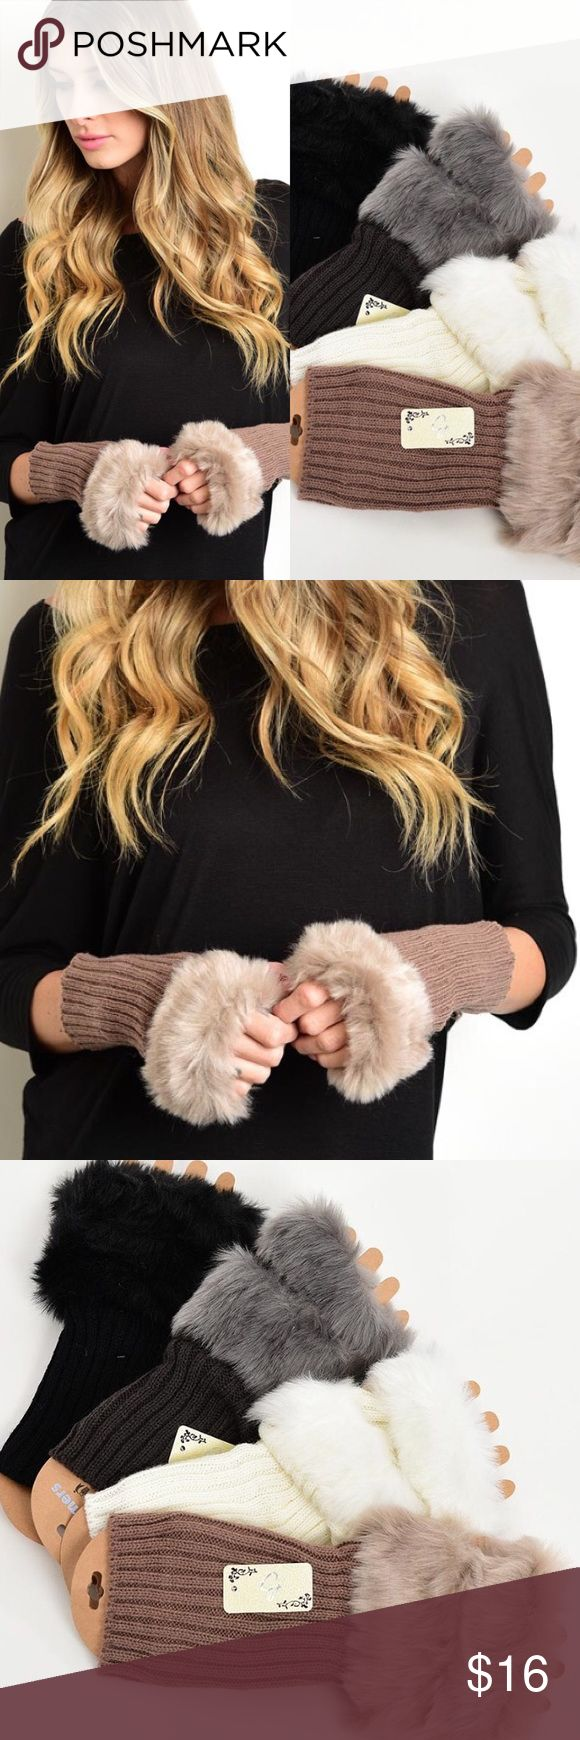 Assorted Colors Fur Lined Fingerless Winter Gloves New with tags. Fingerless gloves with faux fur trim available in assorted colors. Matching boot cuffs/leg warmers available listed separately.                           PRICE IS FIRM UNLESS BUNDLED.                            ❌SORRY, NO TRADES. Boutique Accessories Gloves & Mittens